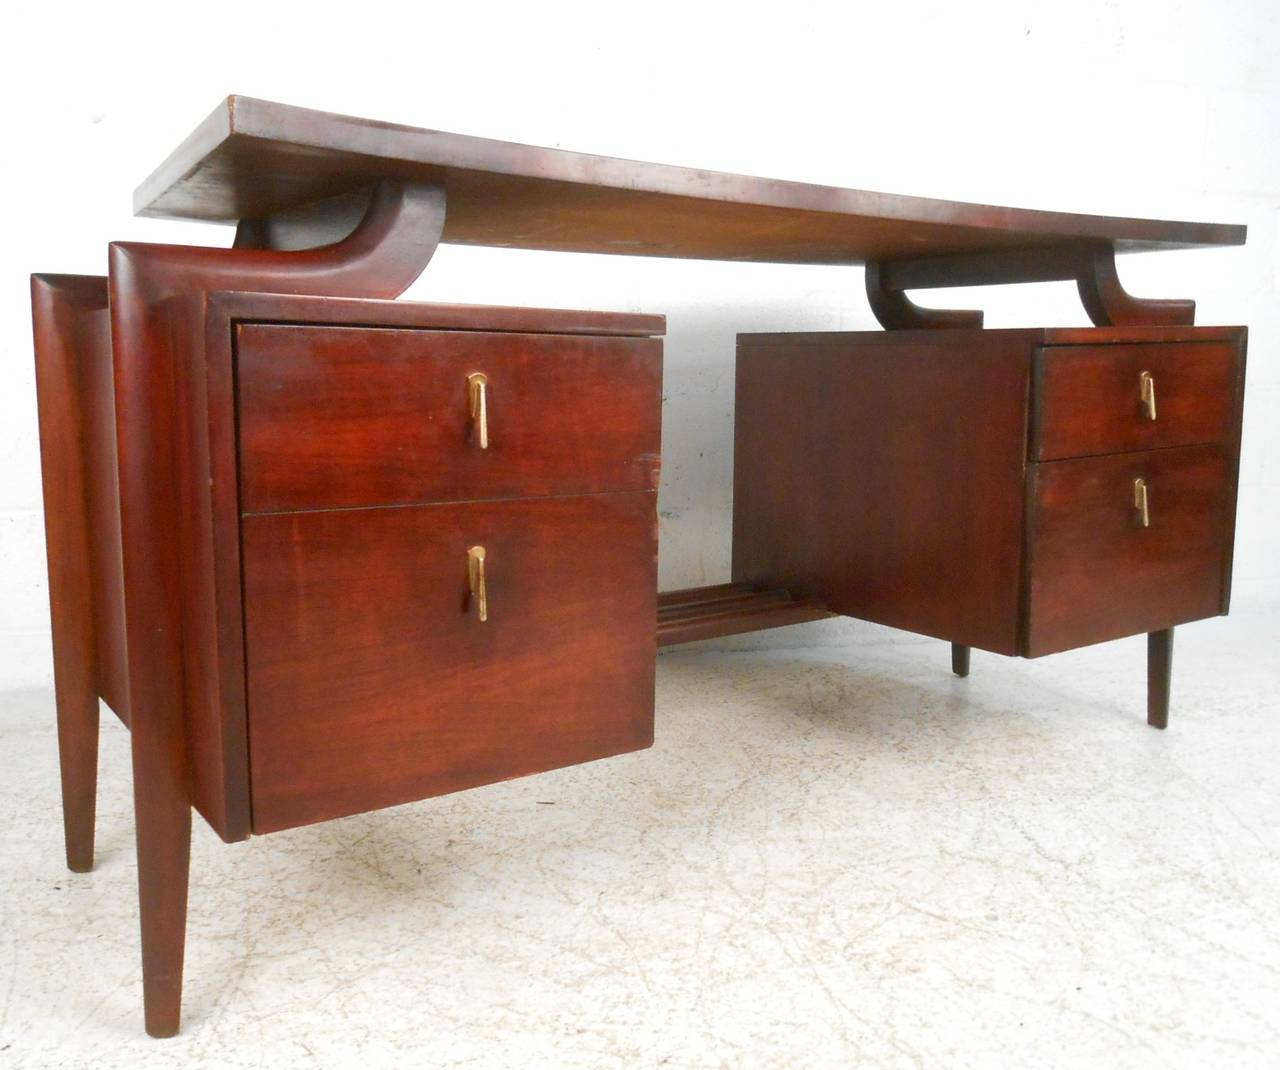 Mid Century Modern Desk: Mid-Century Modern Floating Top Desk With Chair By Tri